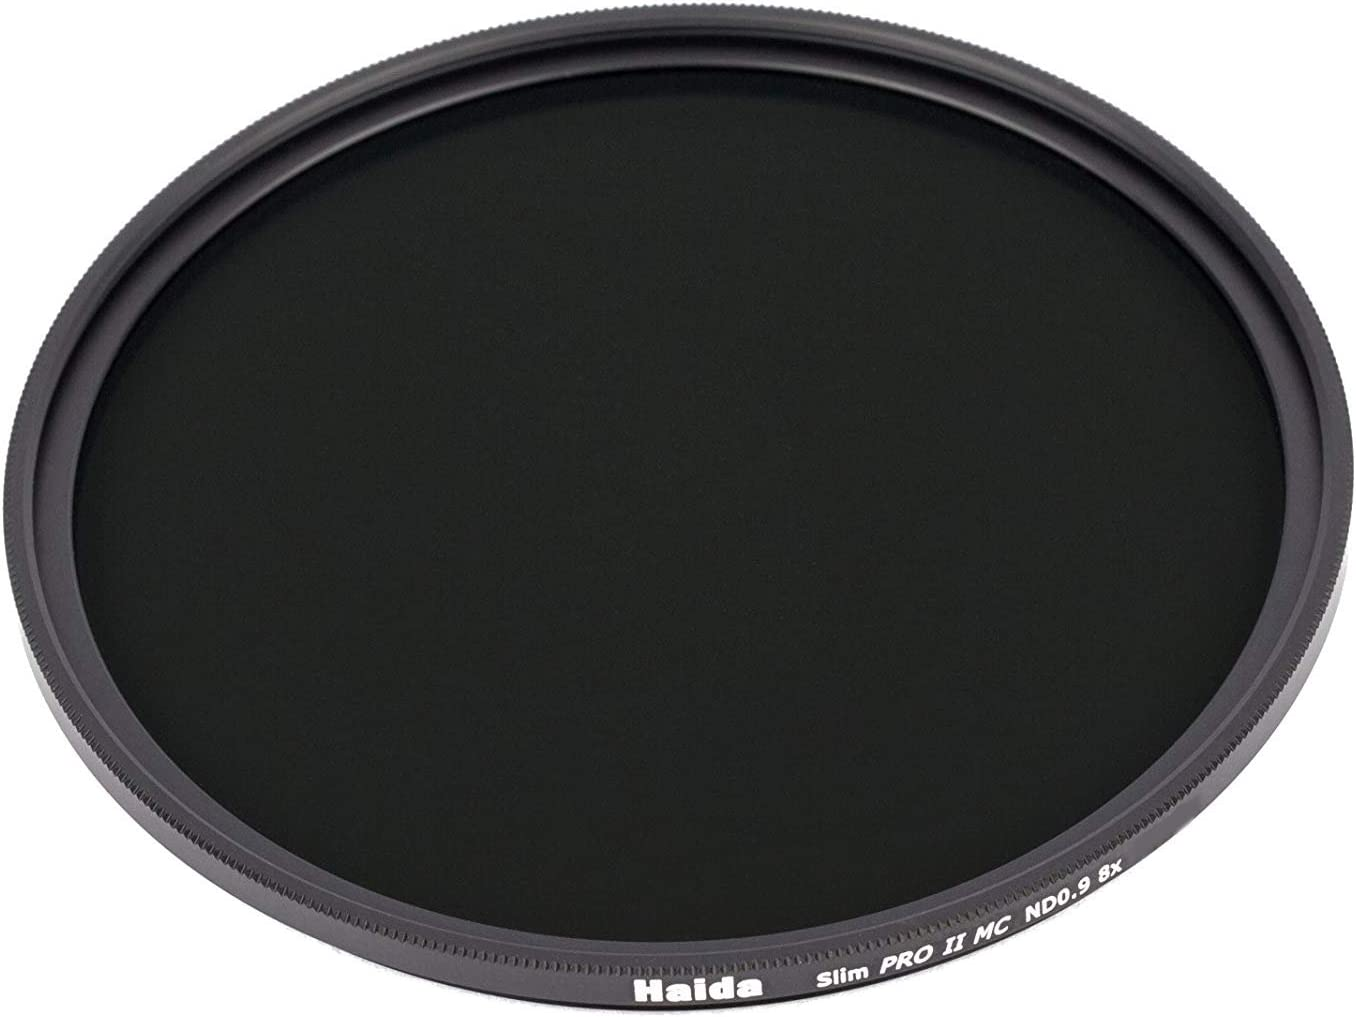 Haida 55mm Slim PRO II Multi-Coated ND8 Filter Neutral Density ND 0.9 3 Stop HD2017-55